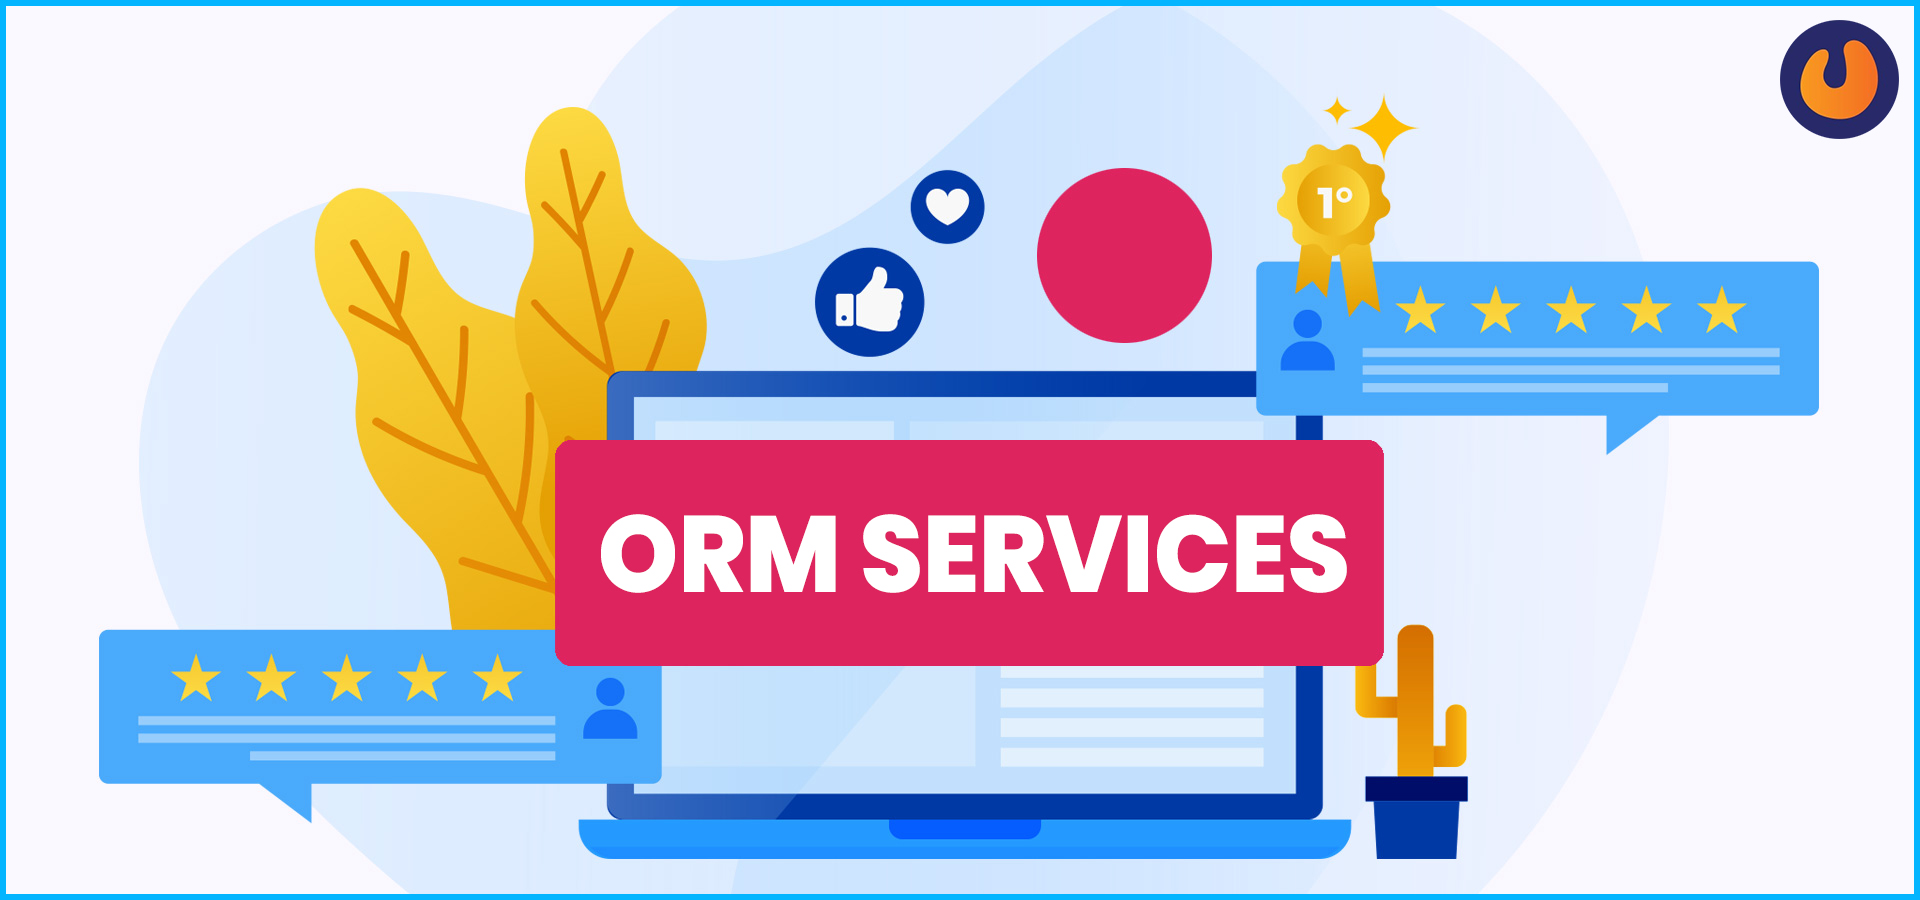 4 Reasons why ORM services are vital for Brand Recognition